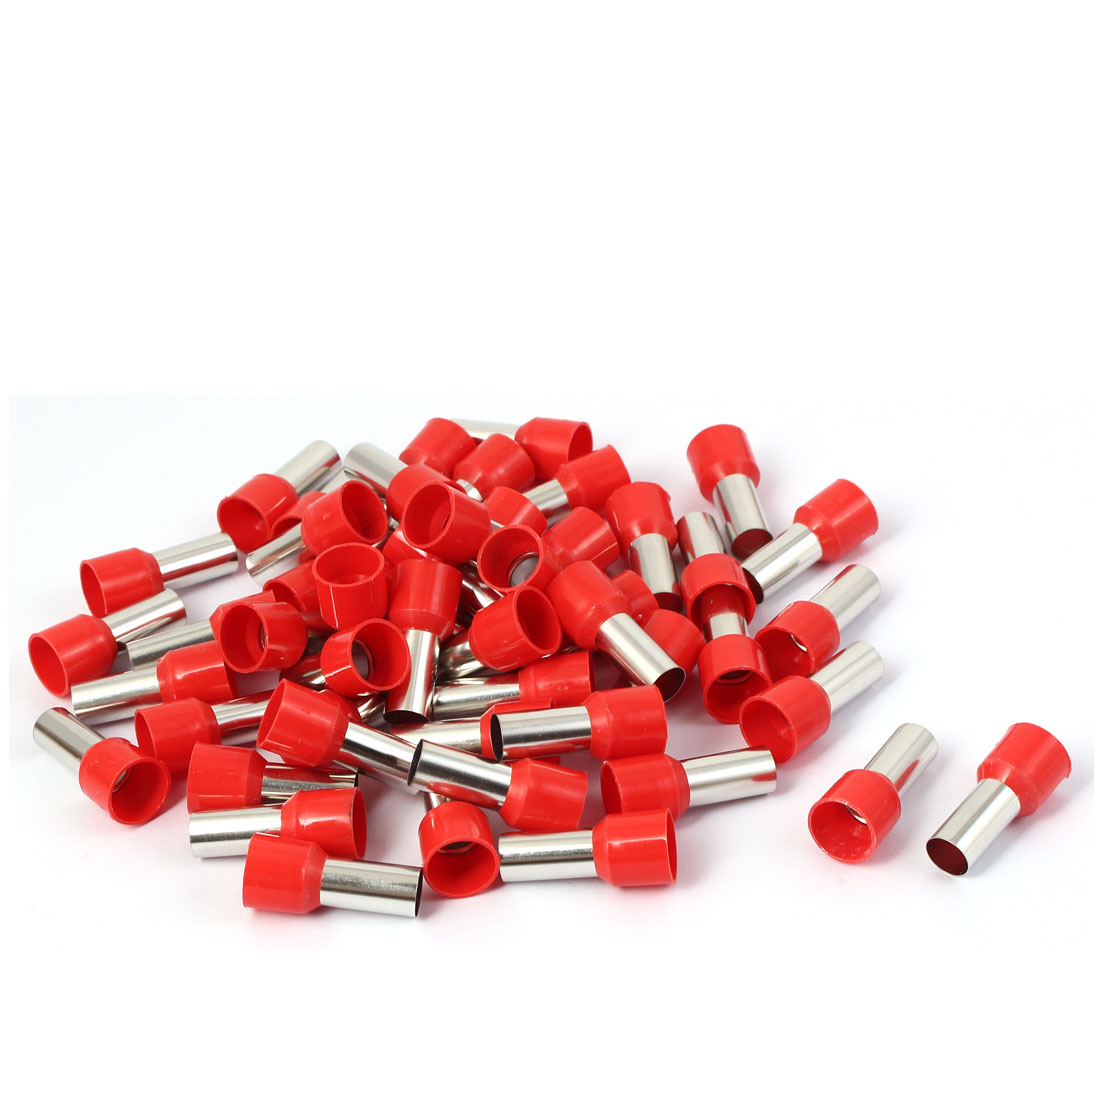 E25-16 Electrical Cable Wire Ends Connector Crimp Insulated Terminal 46pcs